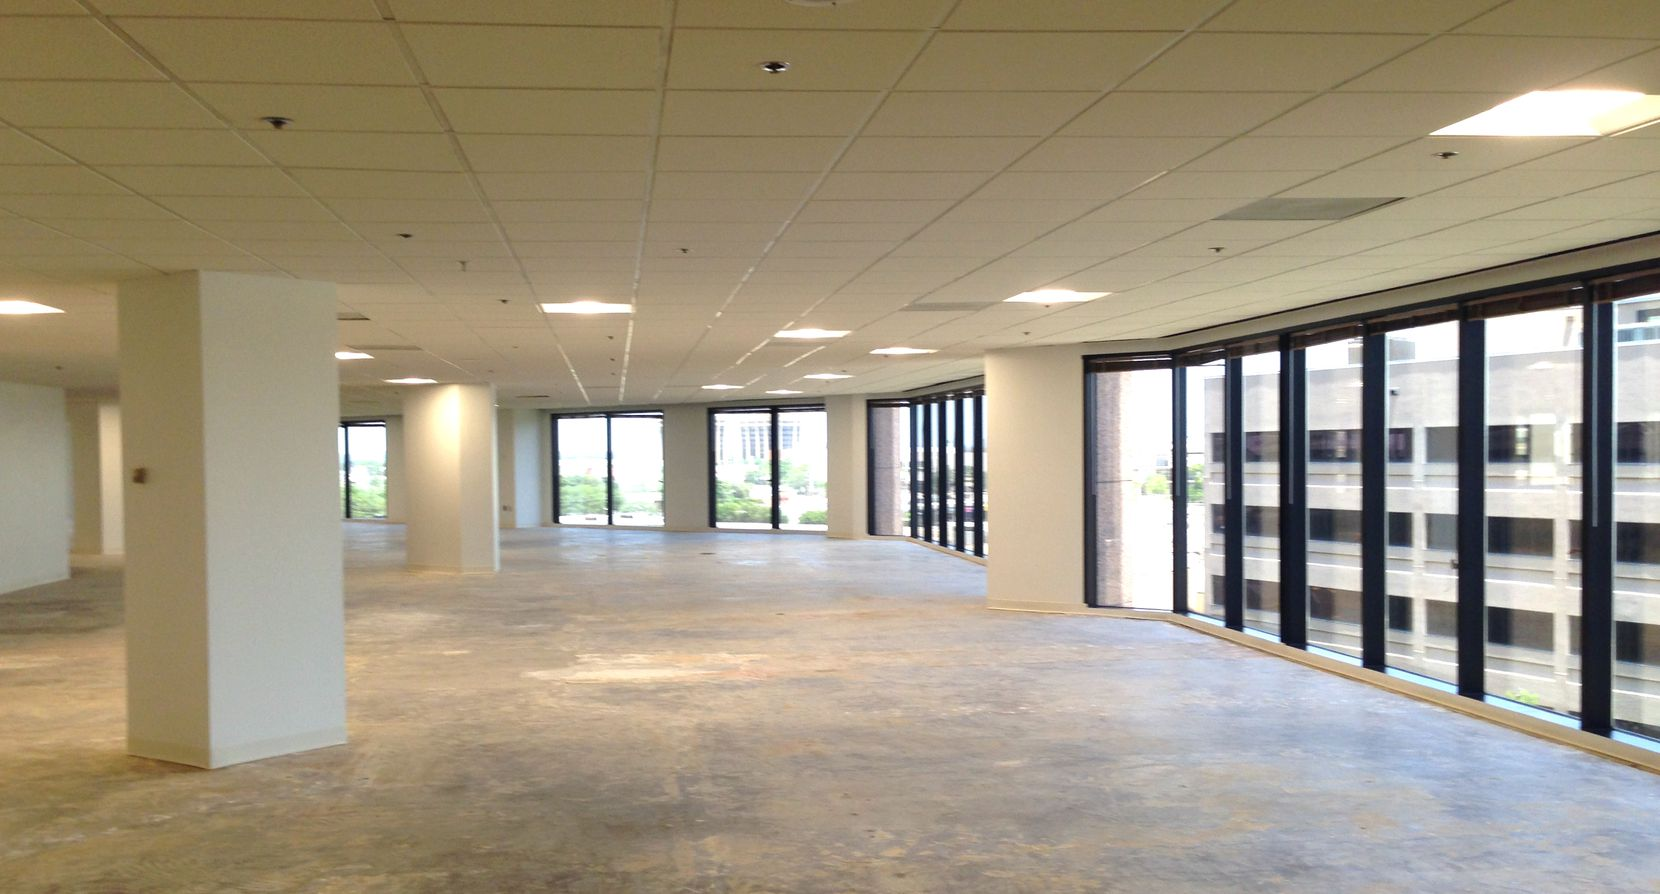 About 175,000 square feet of vacant space is in the Crossings buildings.